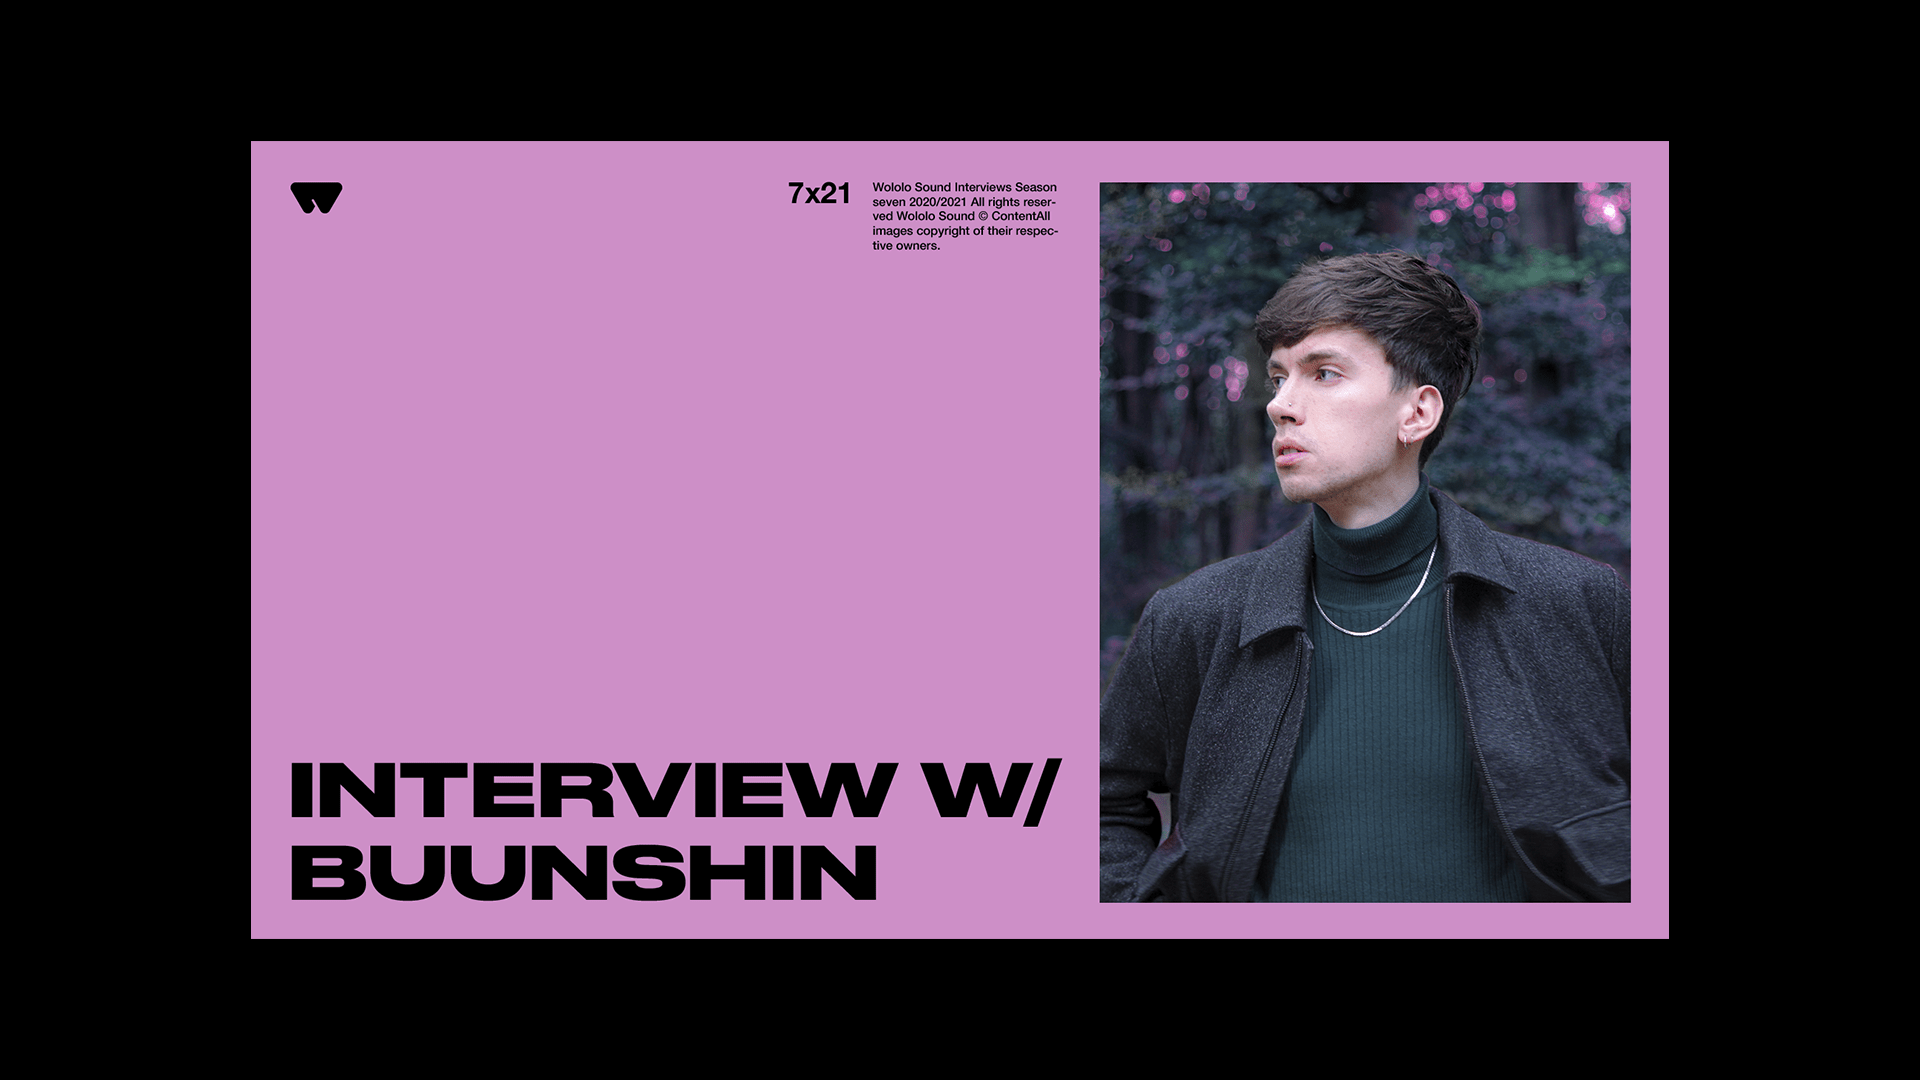 BUUNSHIN INTERVIEW